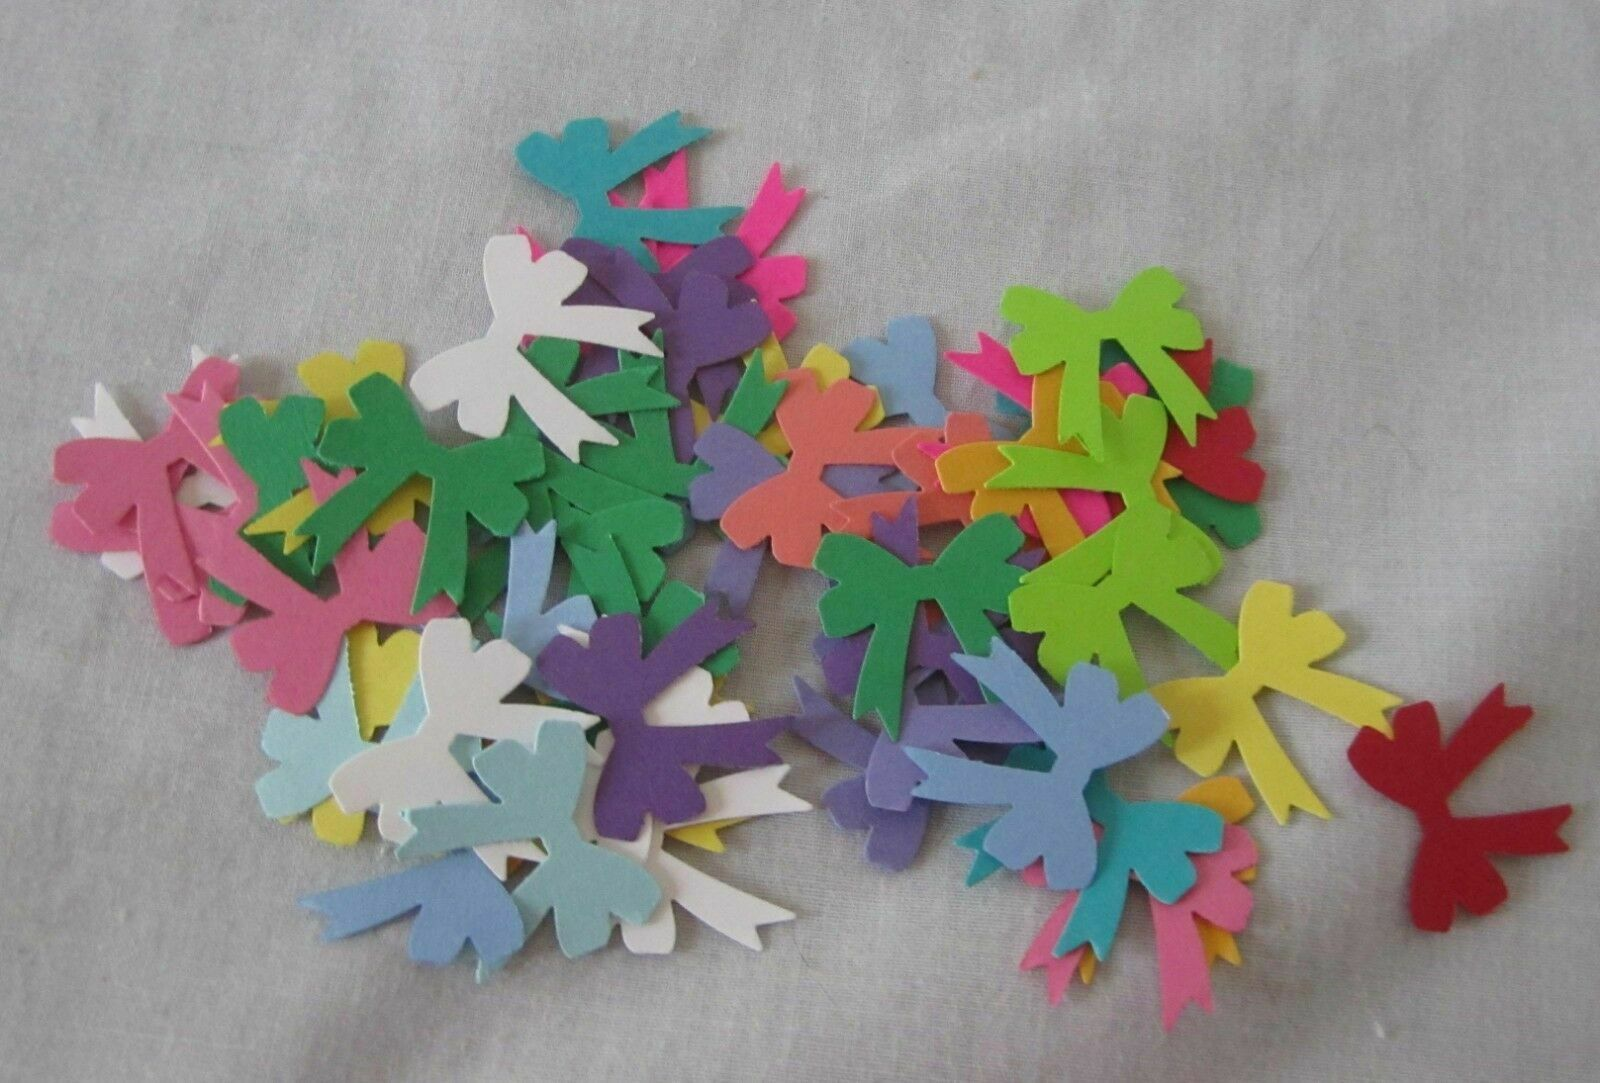 Lot of 50 Small Punched Bows Acid Lignin Free Paper U Pick Color Combination